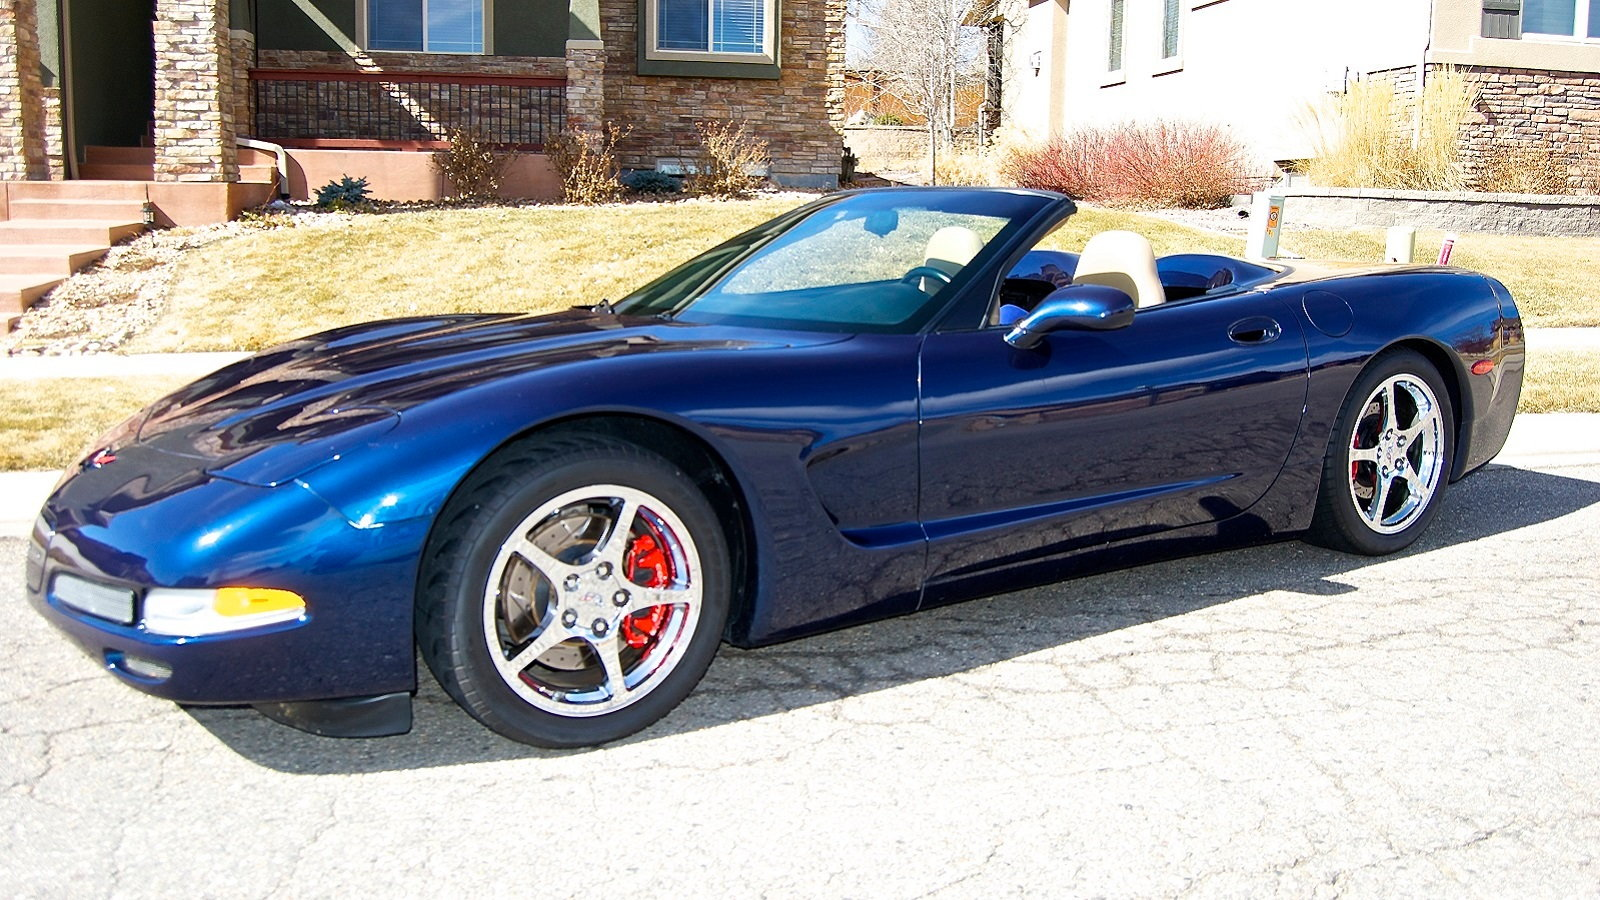 C5 Corvette Styling Changes over the Years